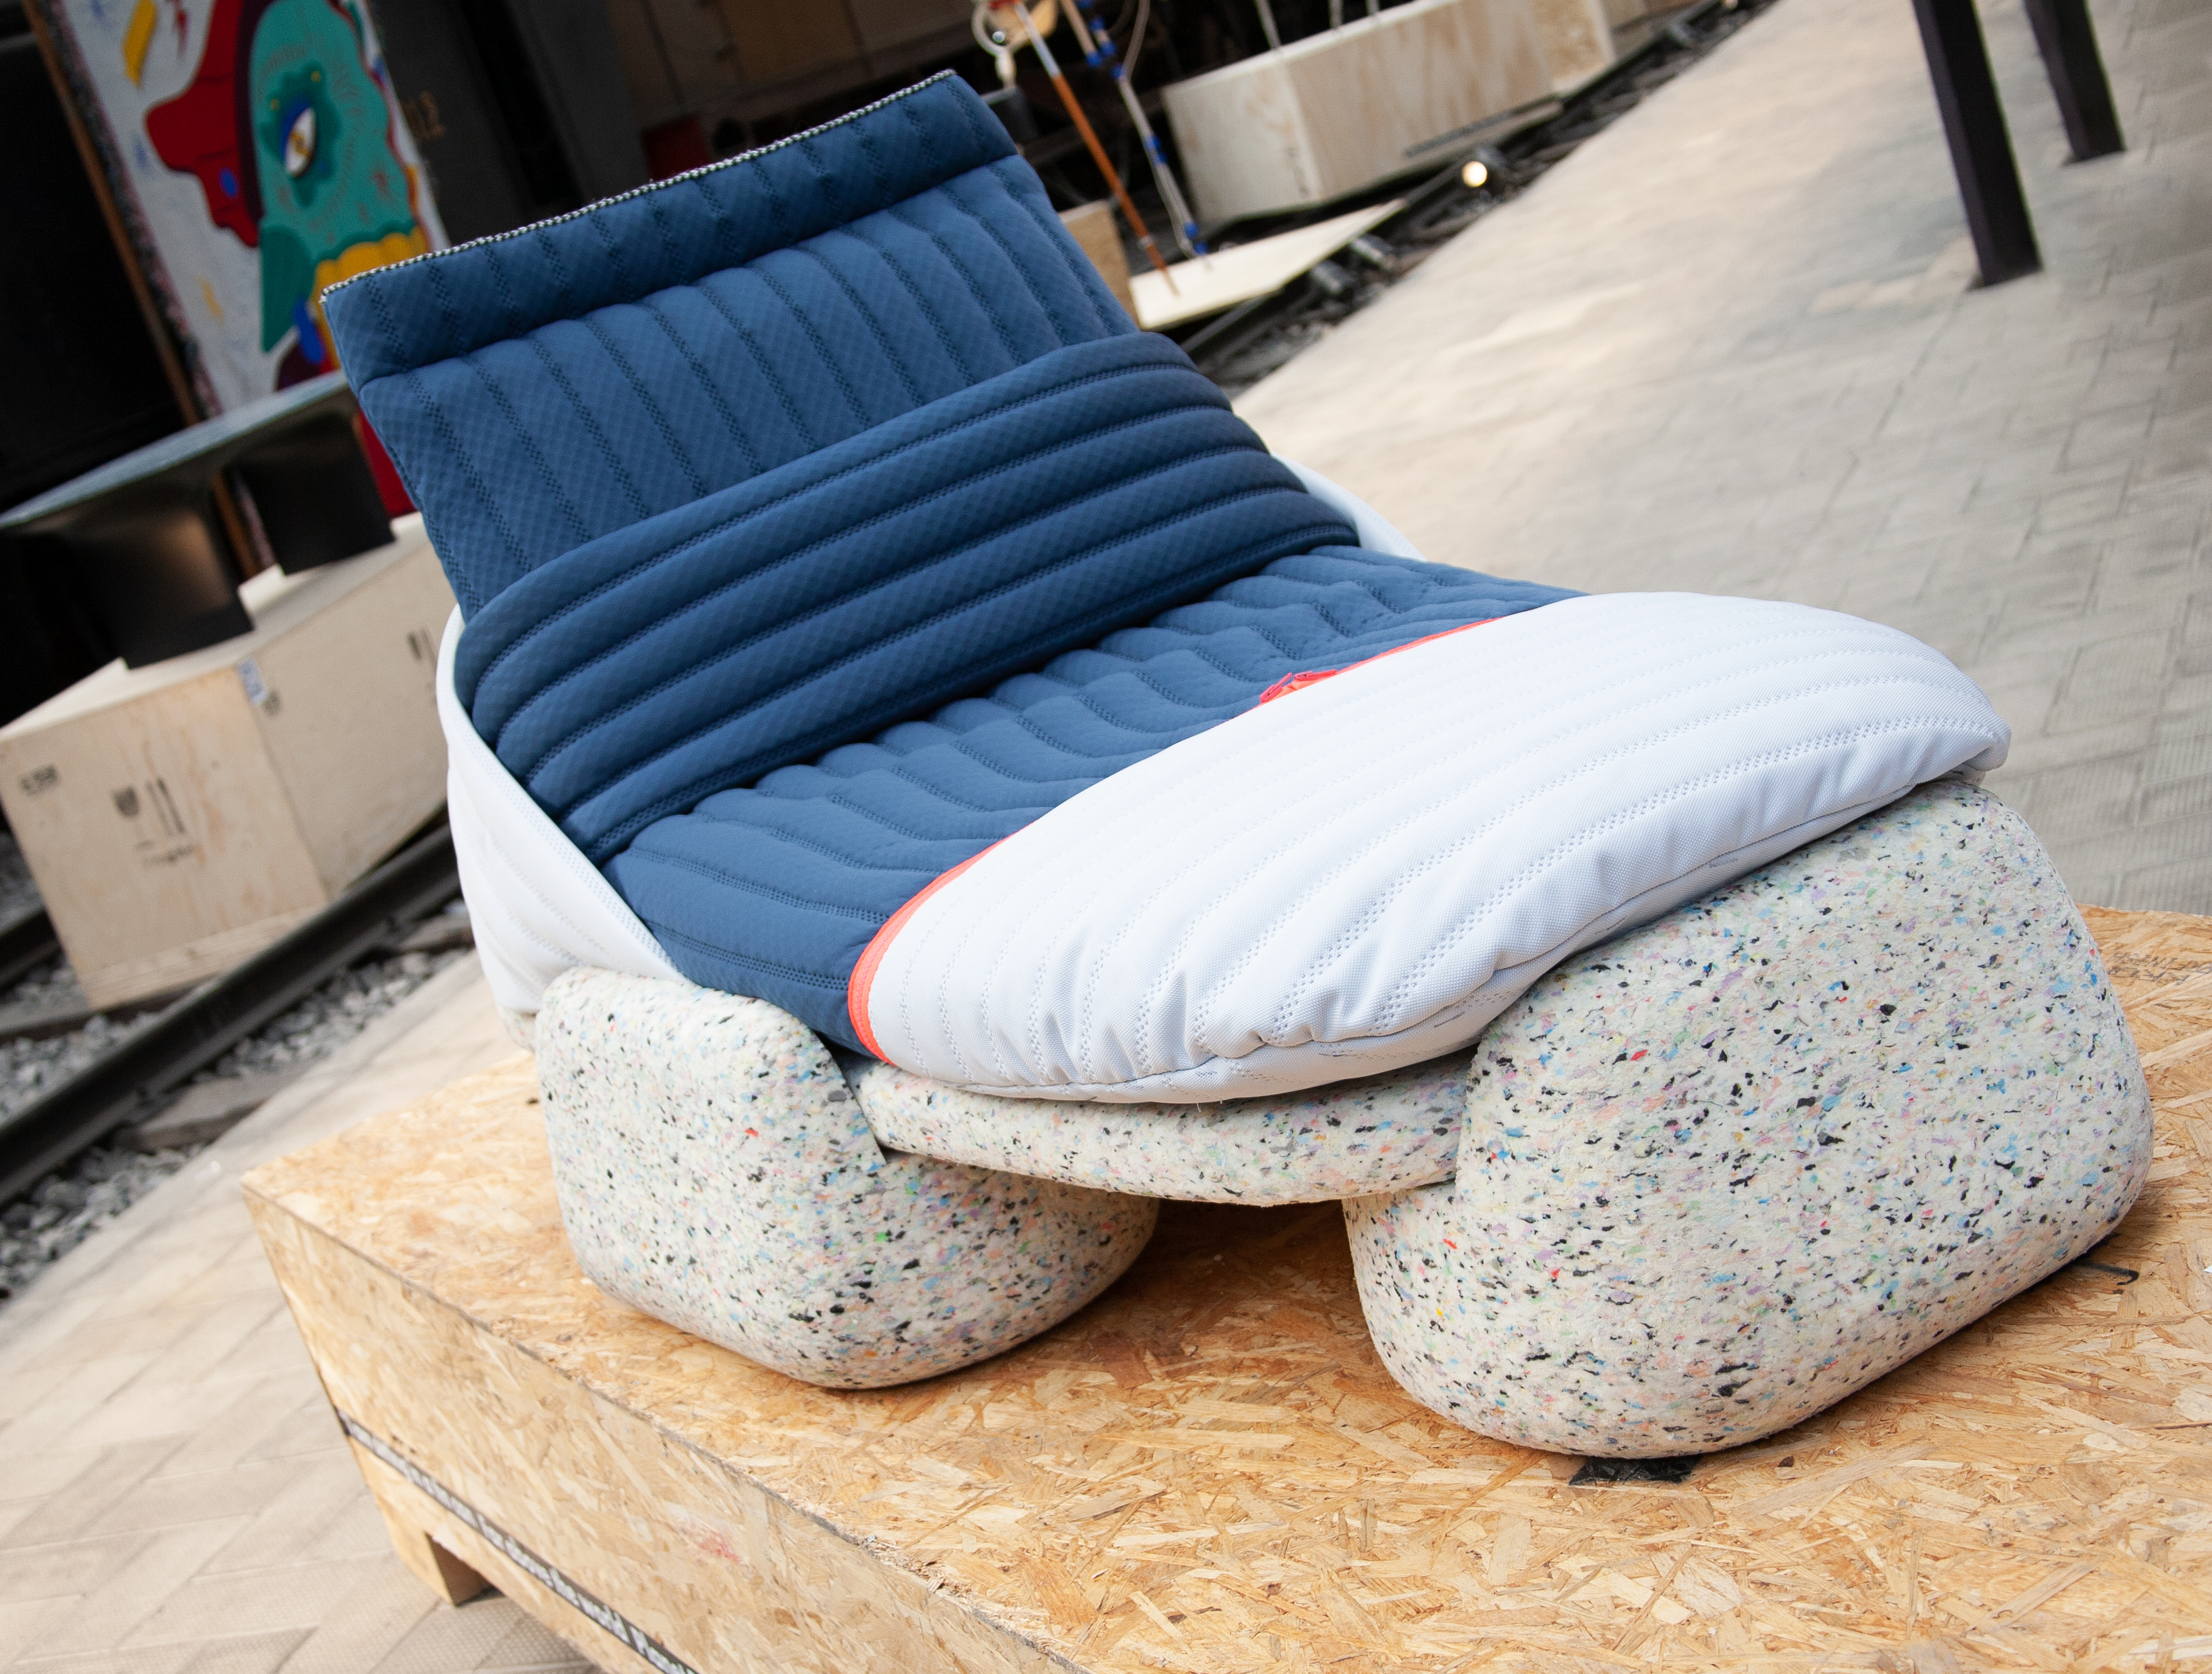 Daybed with recycled plastic base and fabrics; one of the plastic recycling design projects joining the Guiltless Plastic Initiative.